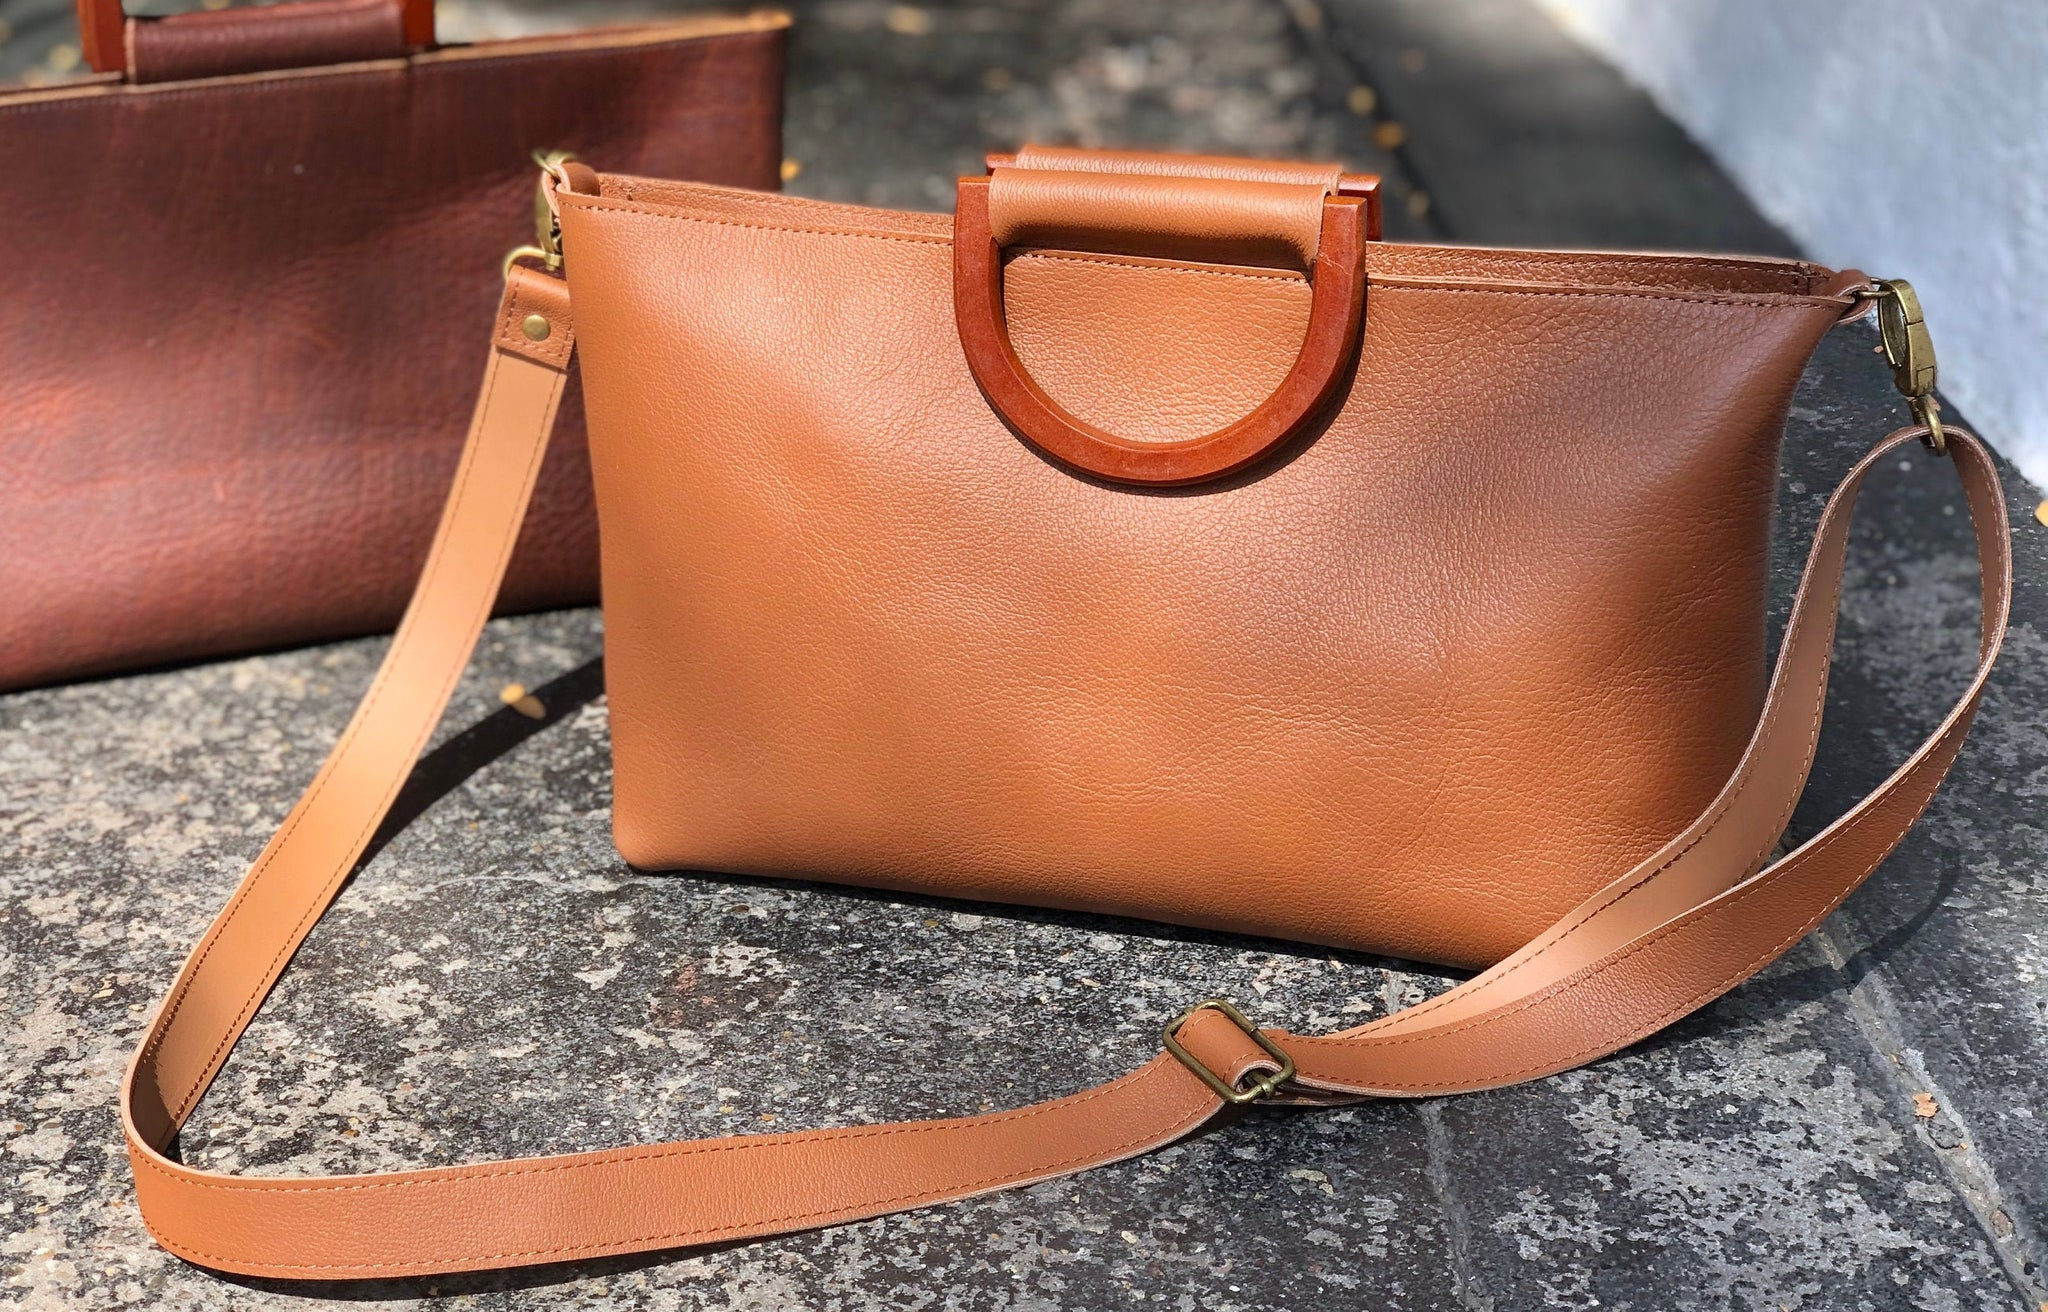 Camel brown leather everyday bag, Small evening purse